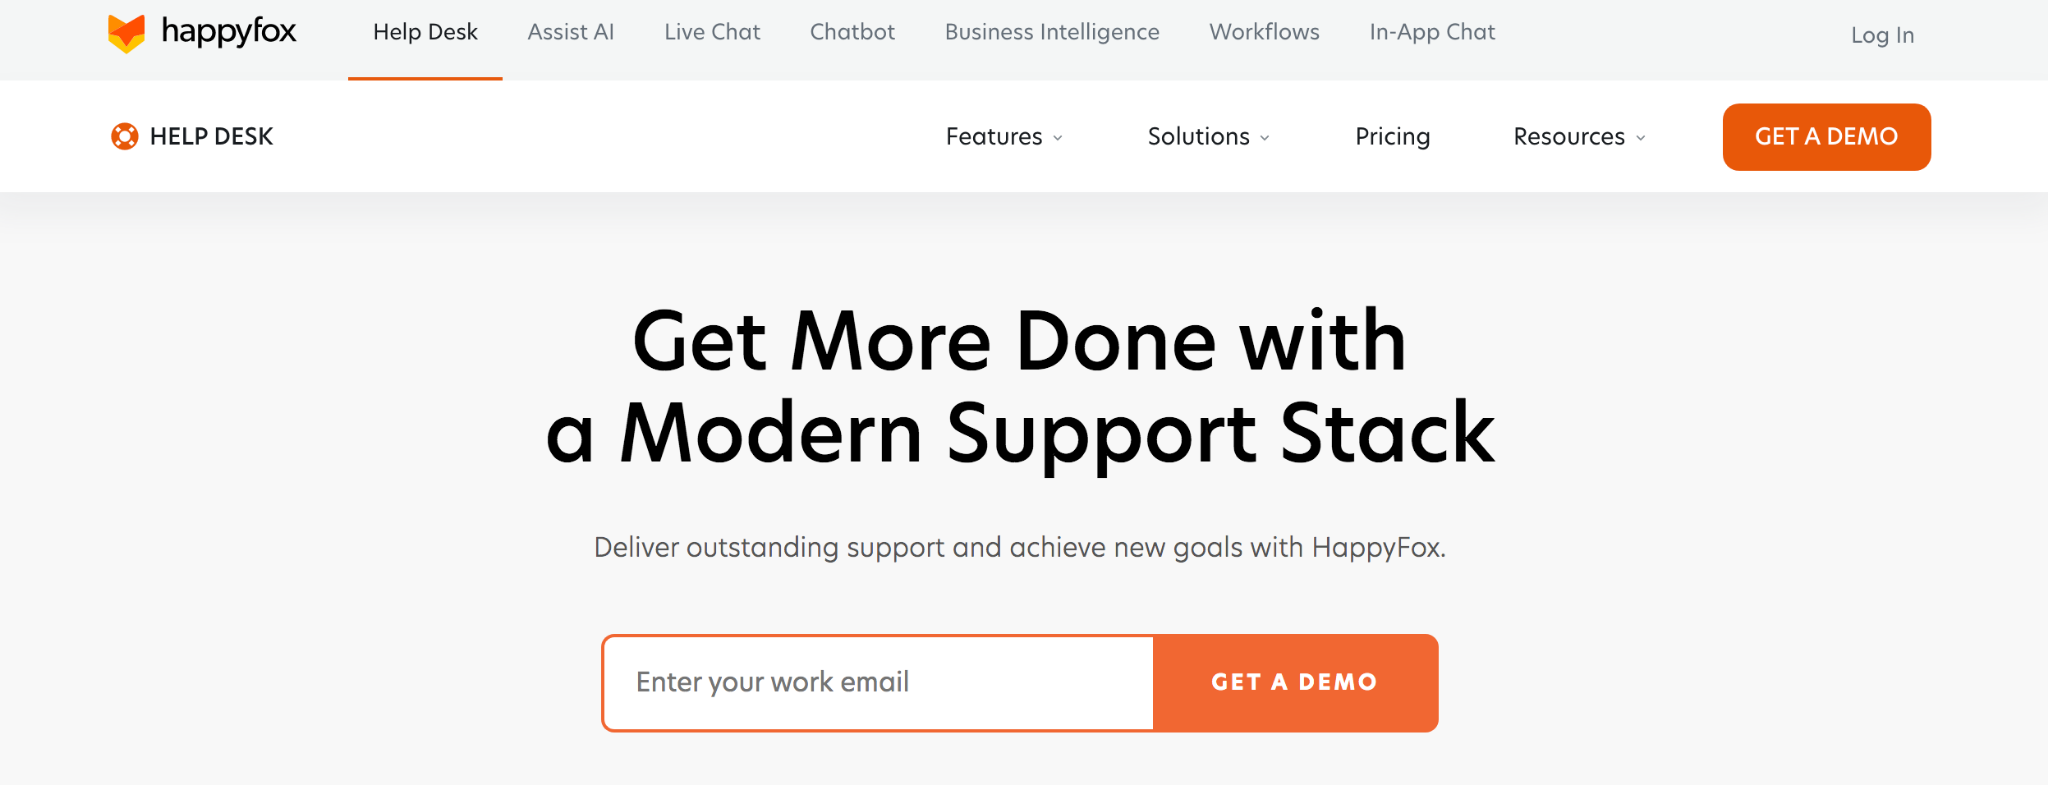 Happy Fox homepage: Get more done with a modern support stack.